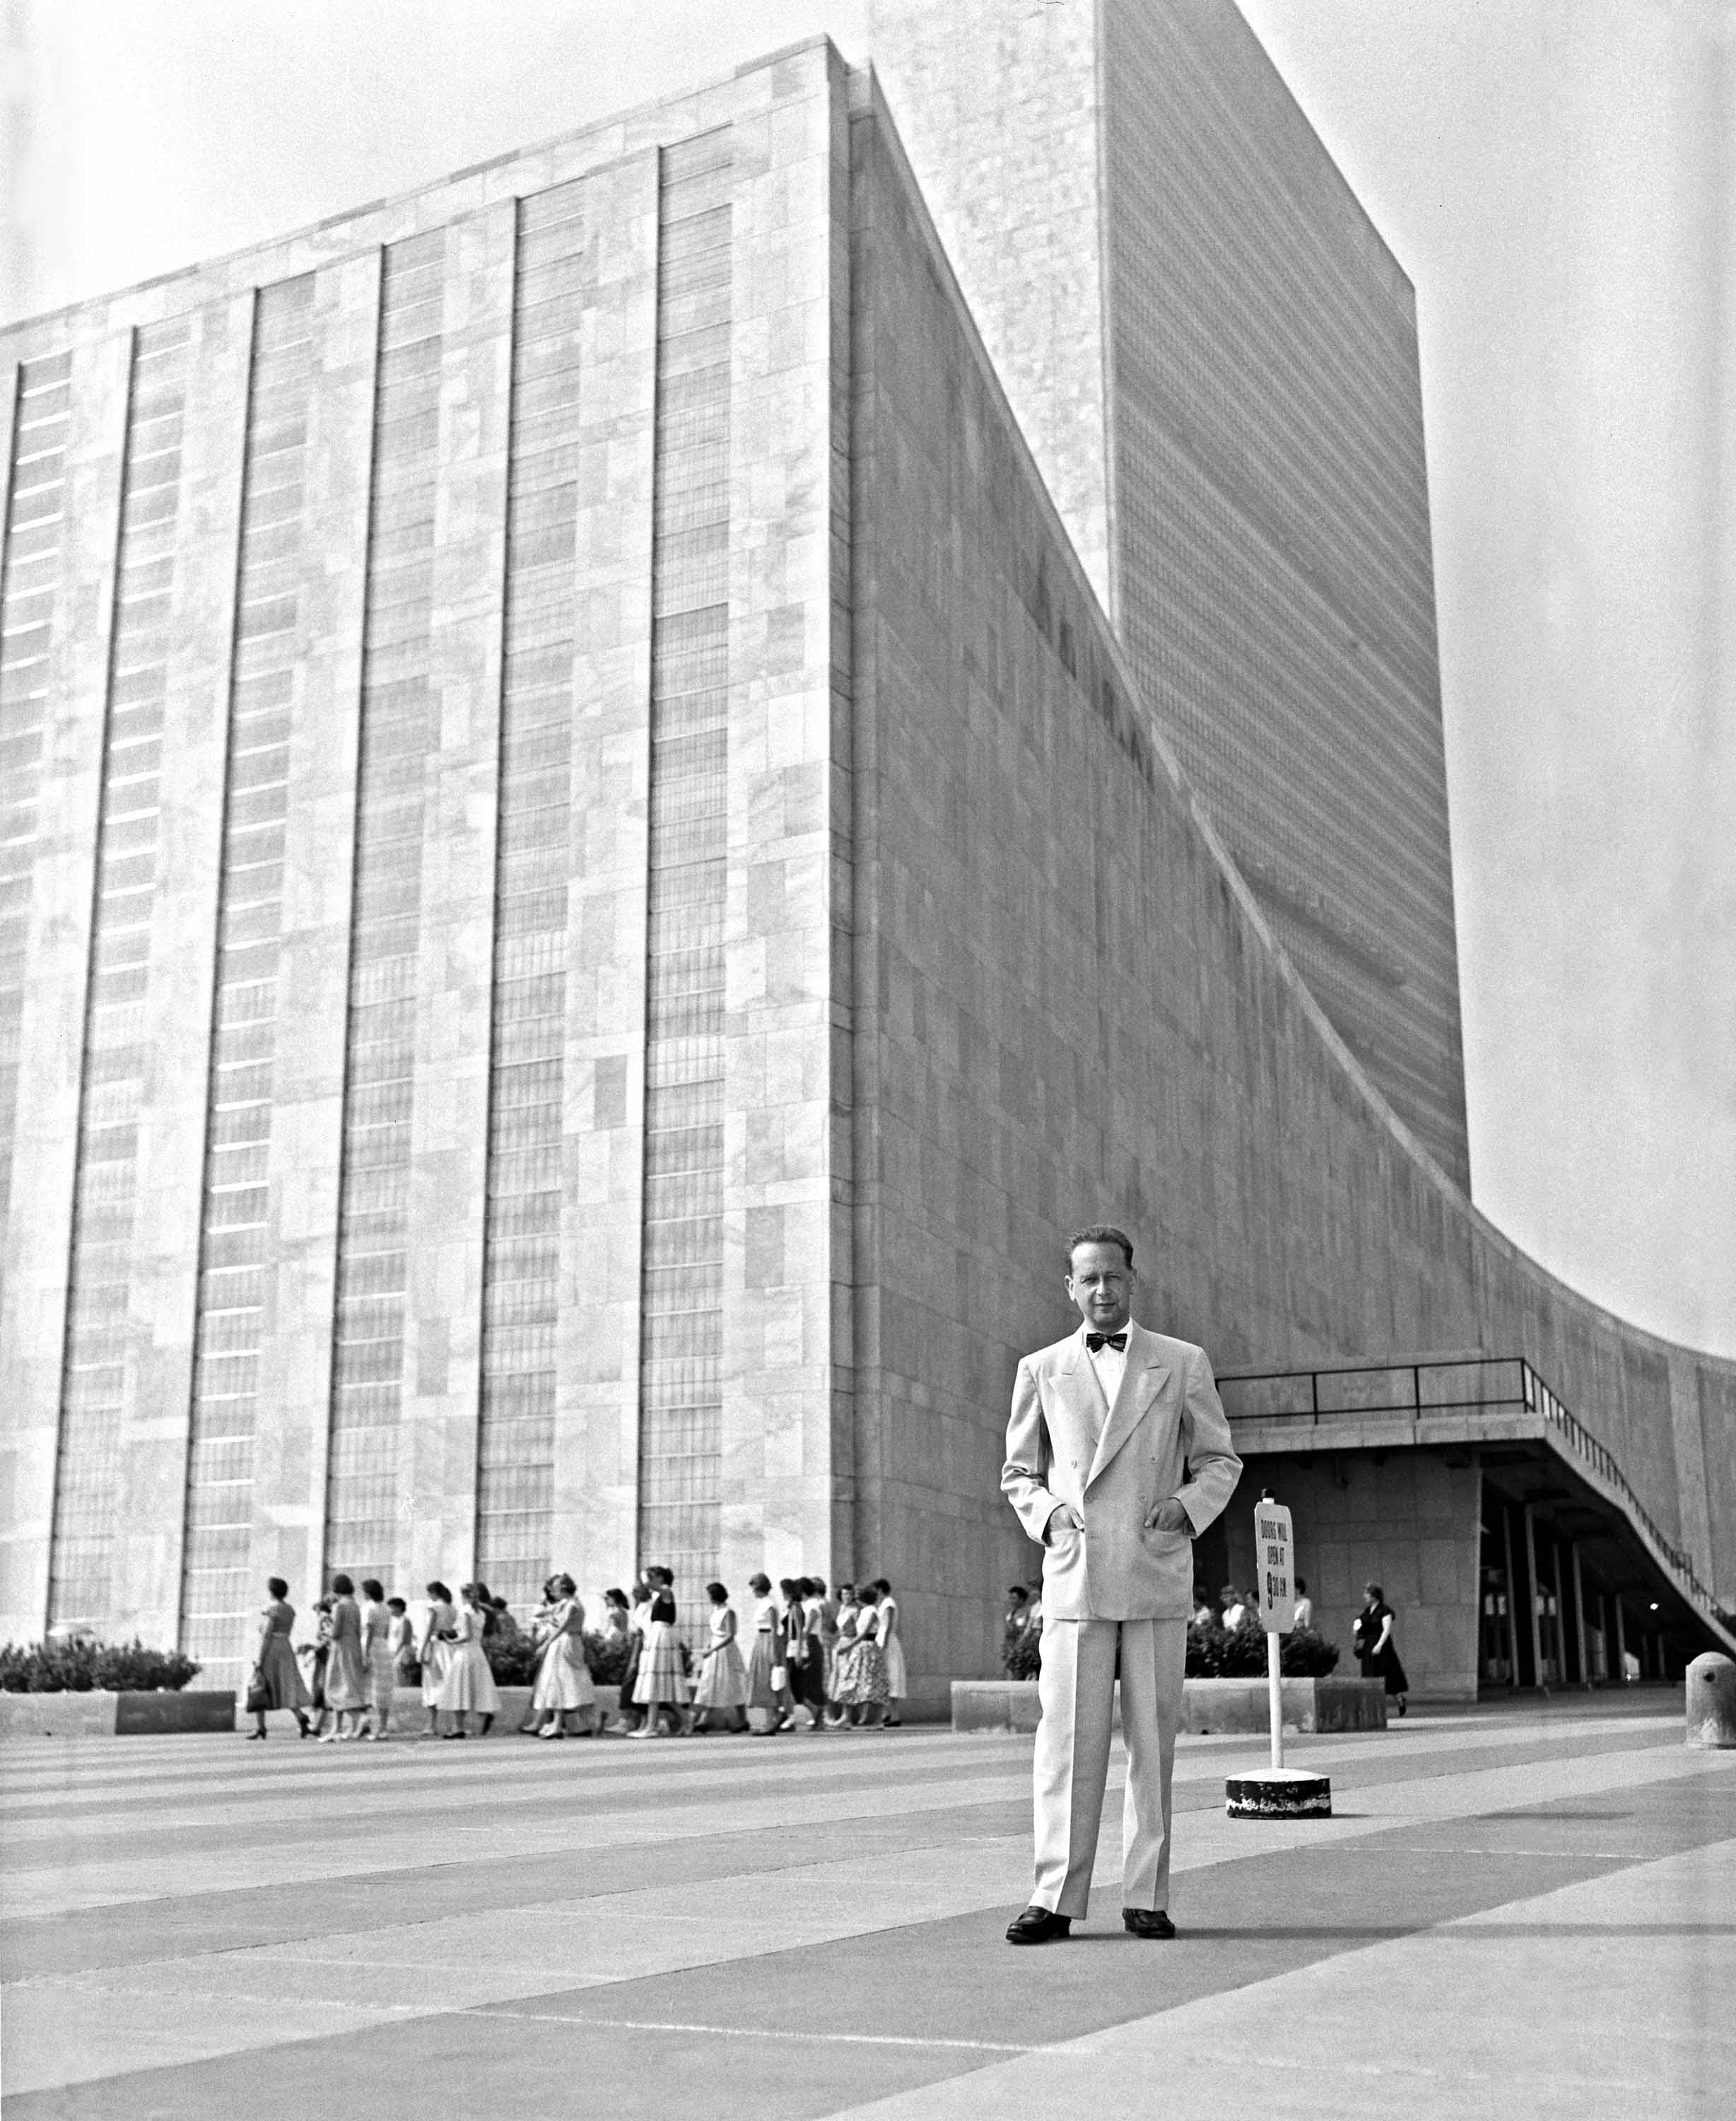 Dag_Hammarskjold_outside_the_UN_building.jpg